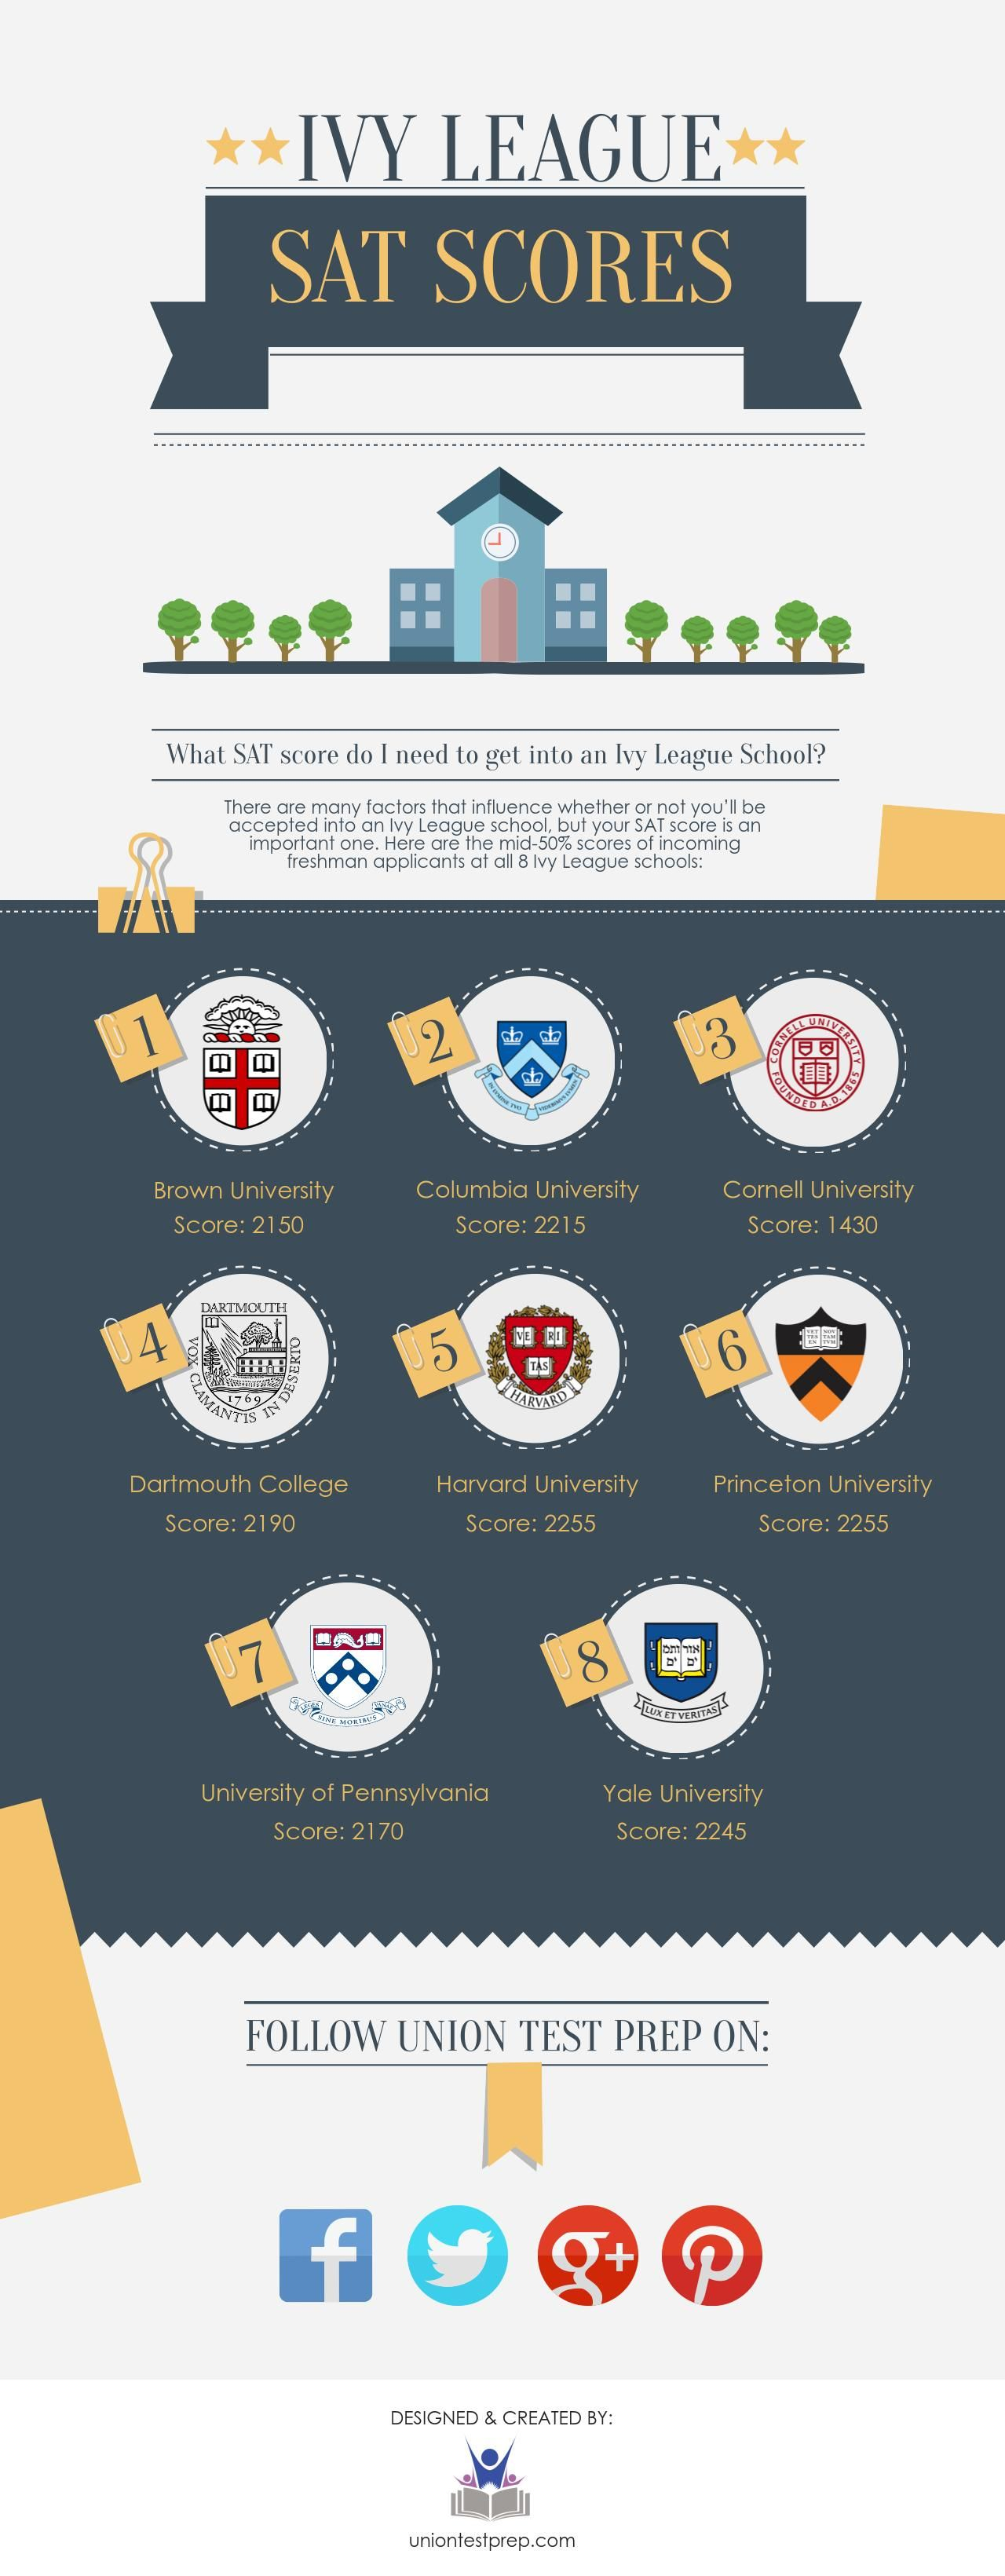 ivy league sat scores are your sat scores good enough for harvard are your sat scores good enough for harvard or yale follow 128029yonce get posts on the daily128166 hayleybyu